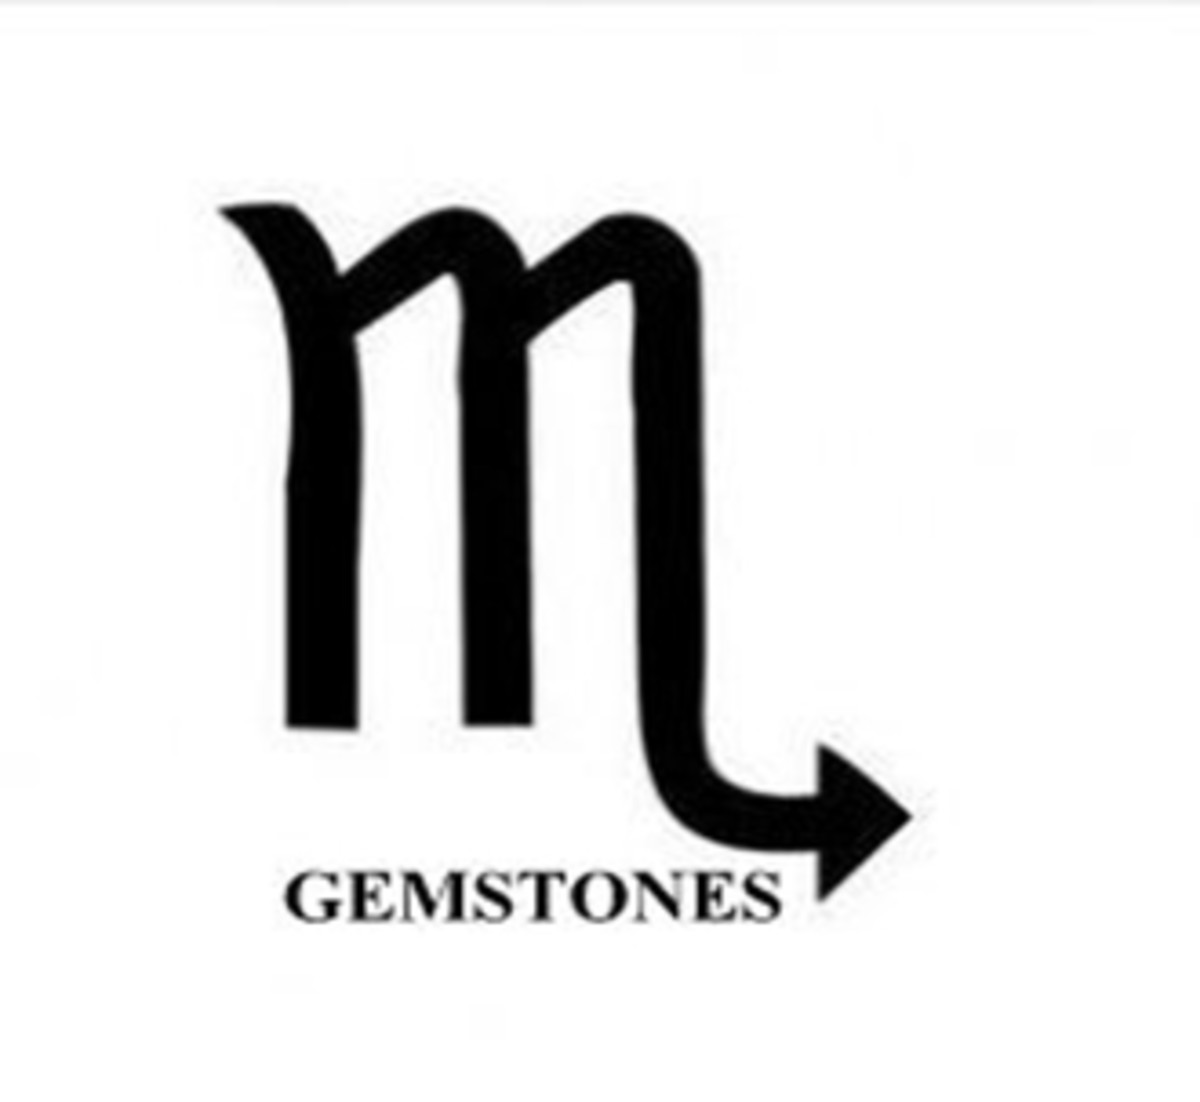 Scorpio Gemstones